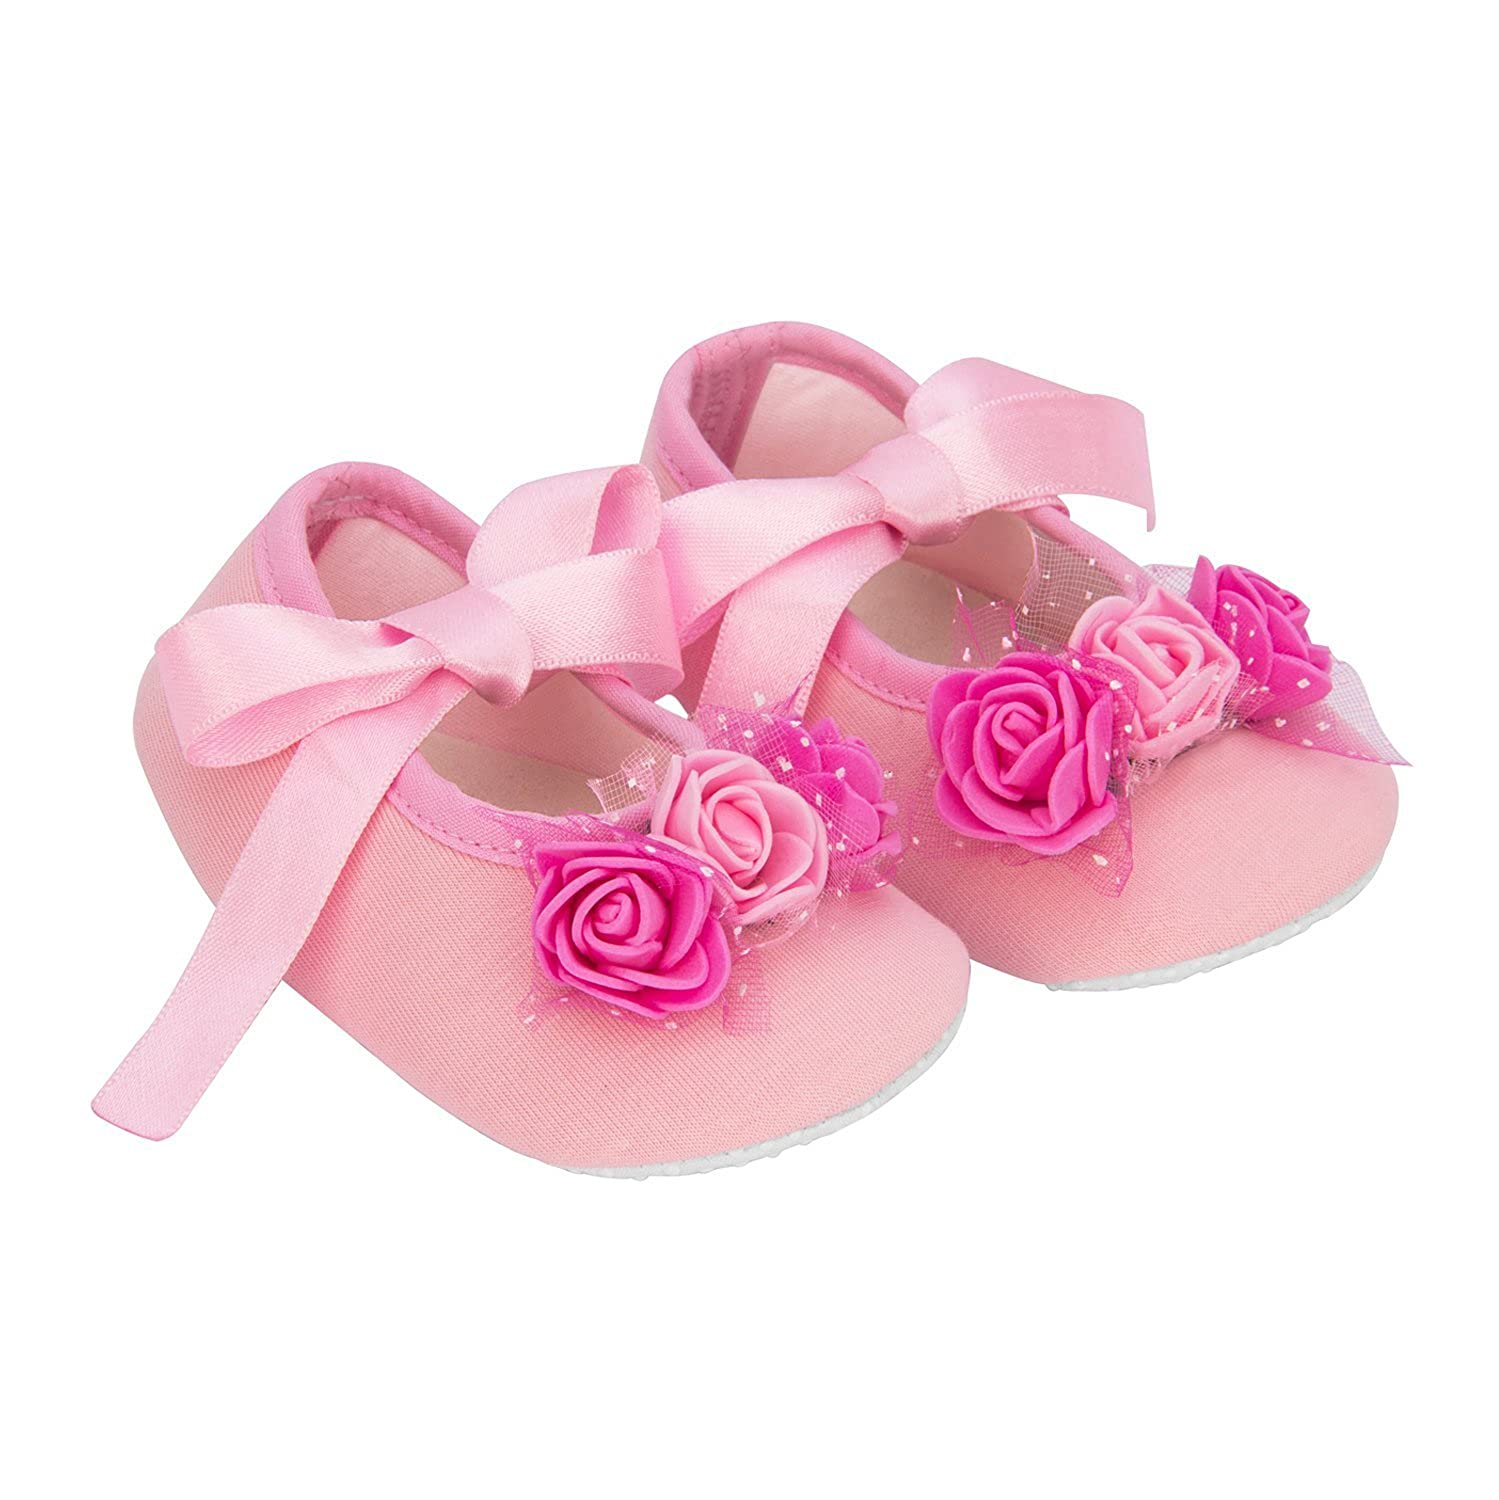 Daizy Baby Shoes/Booties in Pink Ribbon